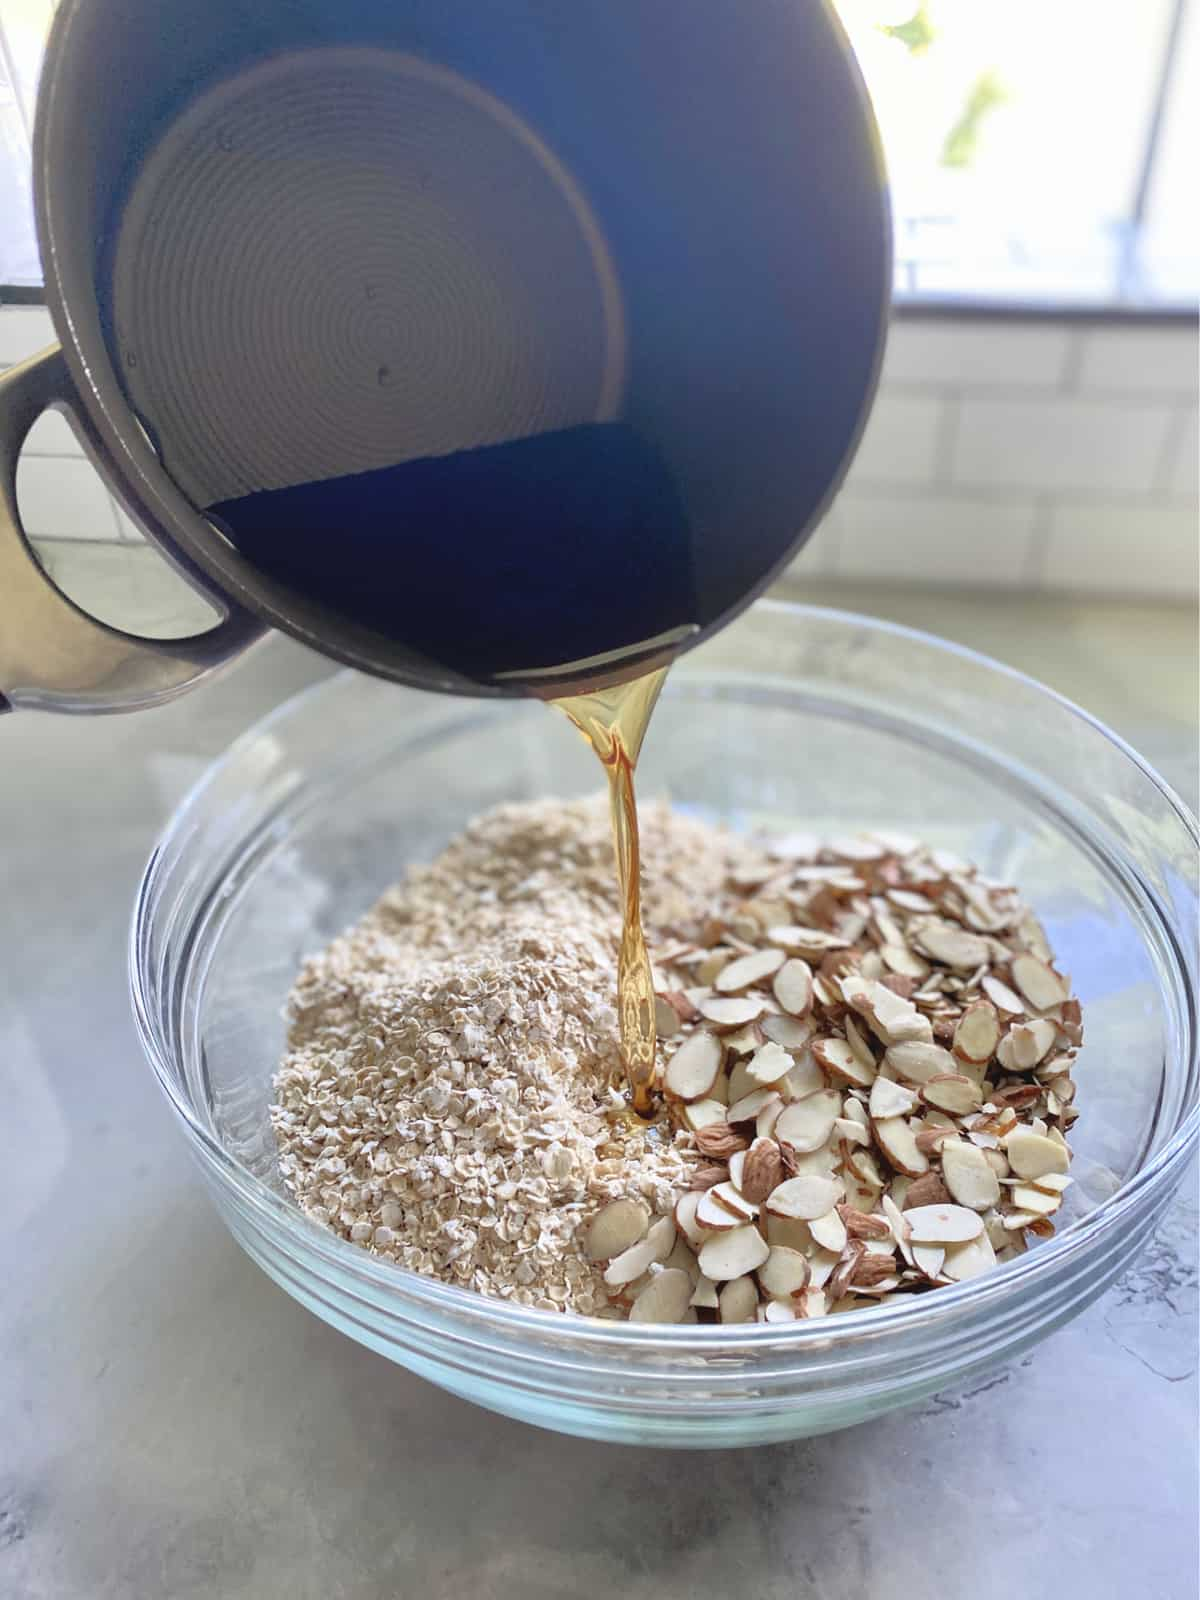 Pot pouring brown liquid into a glass bowl of oats and almond slices on a marble countertop.